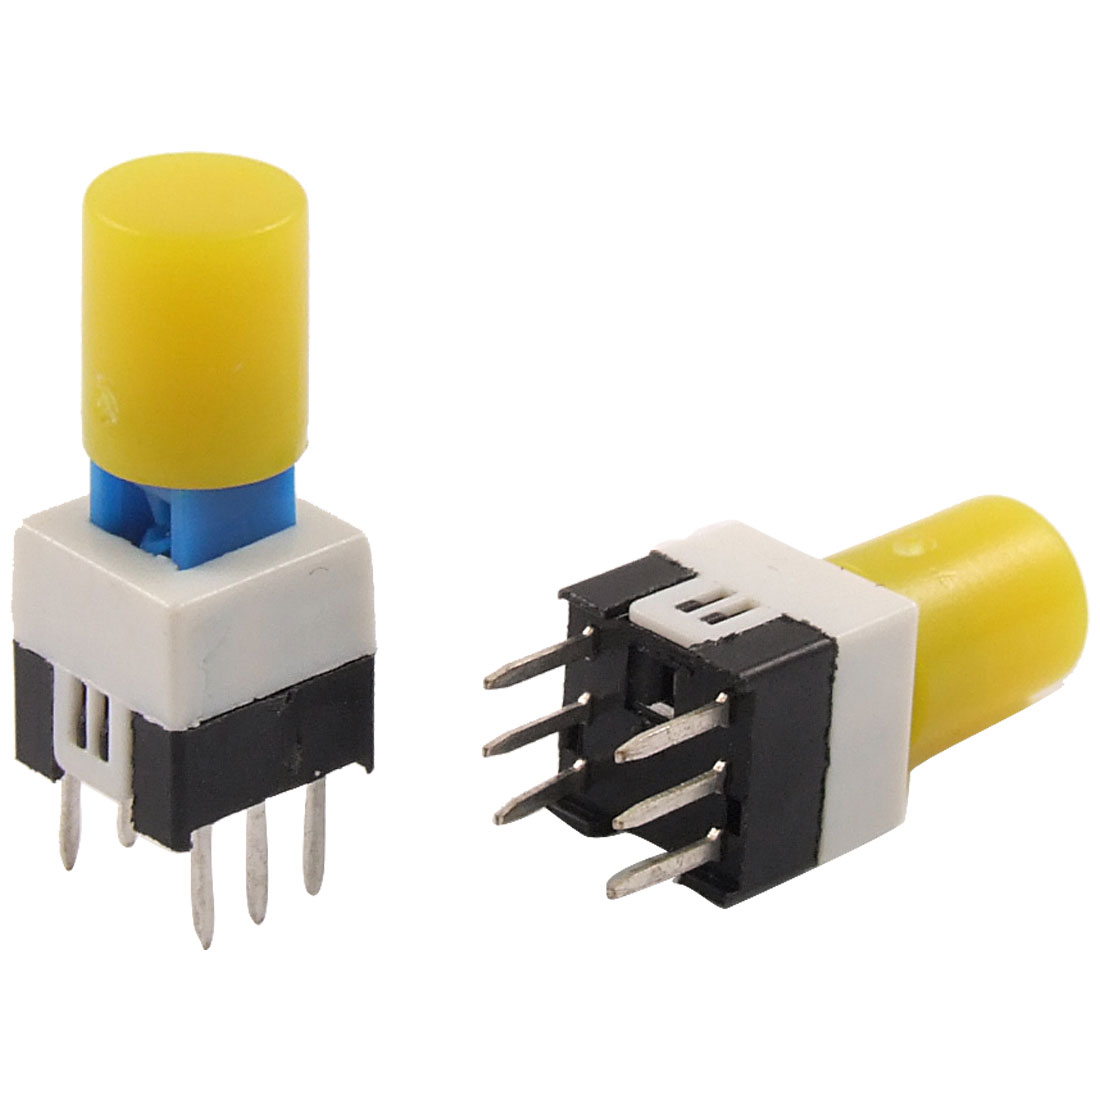 10 Pcs Yellow Round Cap Self Lock Tact Tactile Push Button Switch 7 x 7mm x 16mm